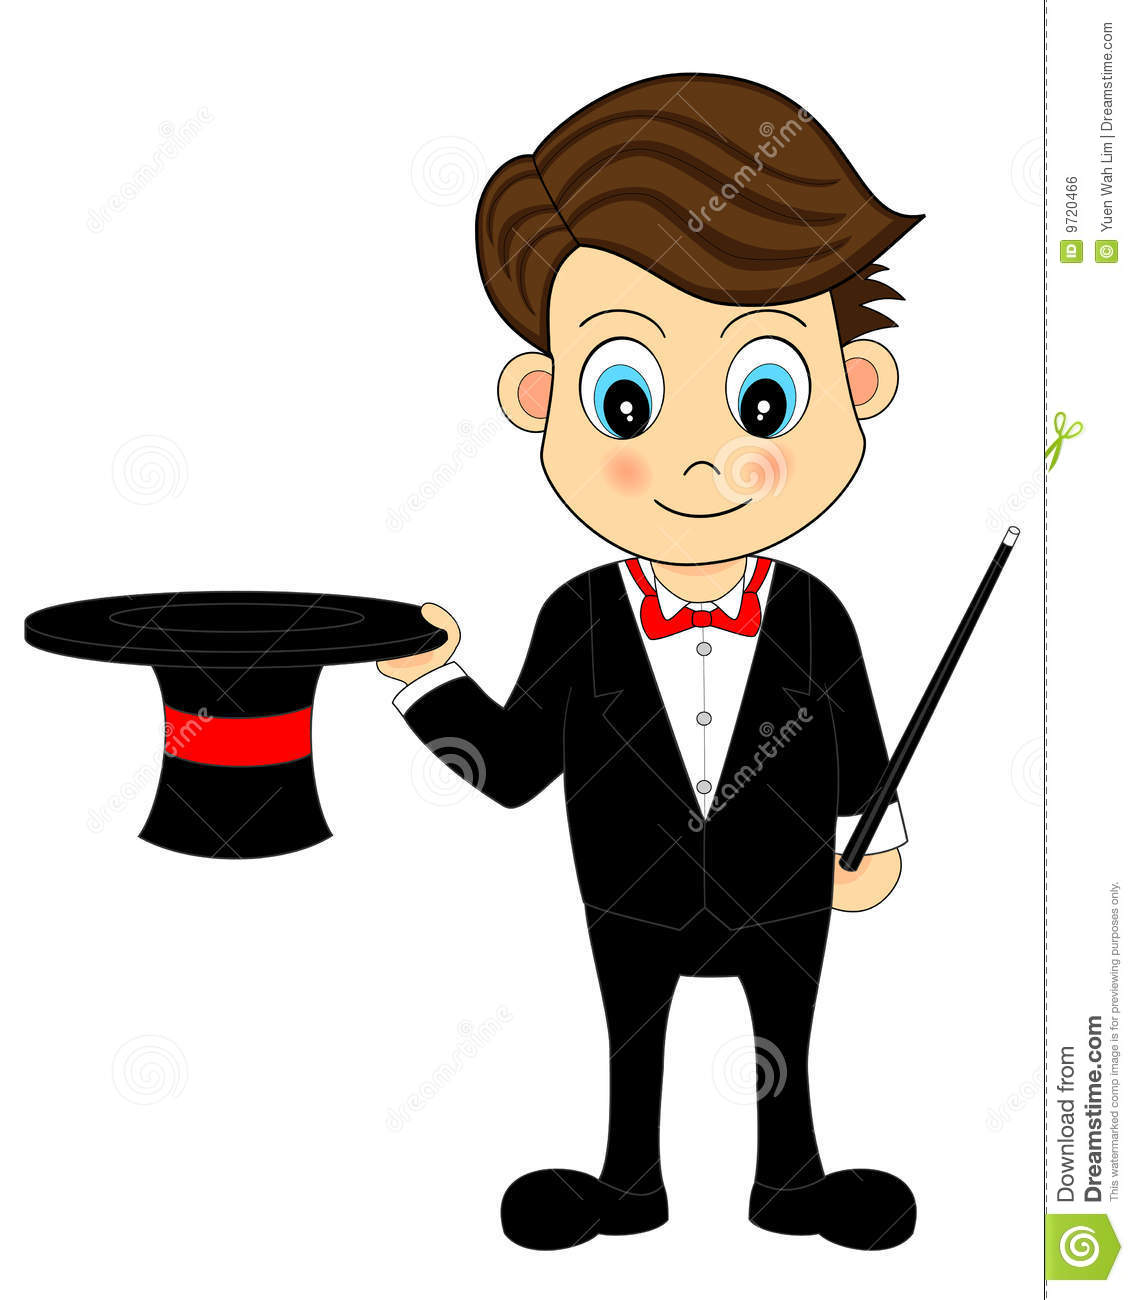 Cute Cartoon Magician With Hat And Wand Royalty Free Stock Image - Image: 9720466